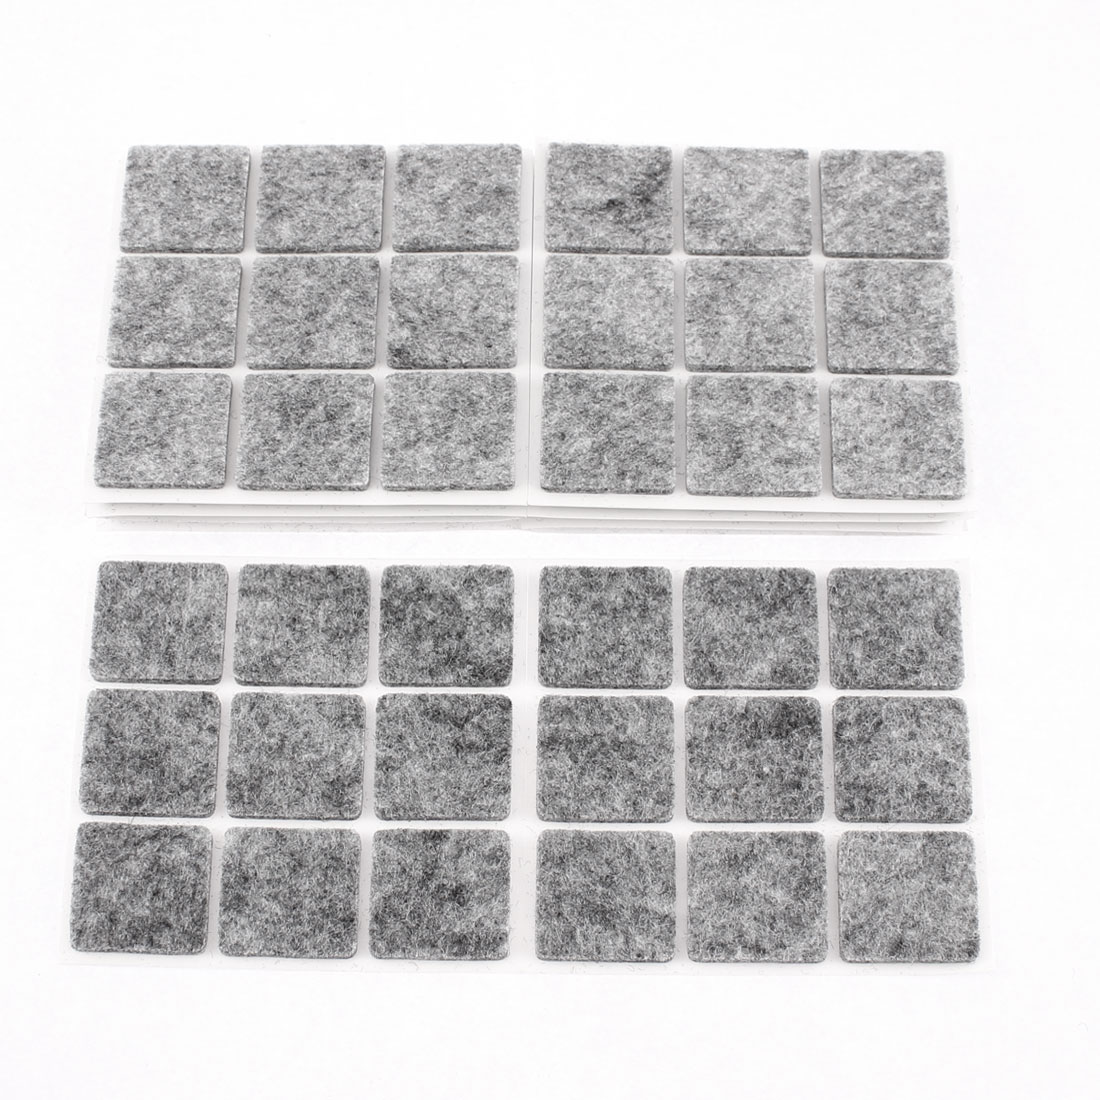 Furniture Feet Non Slide Self Adhesive Felt Protector Pads Floor Care Mats 90 Pcs